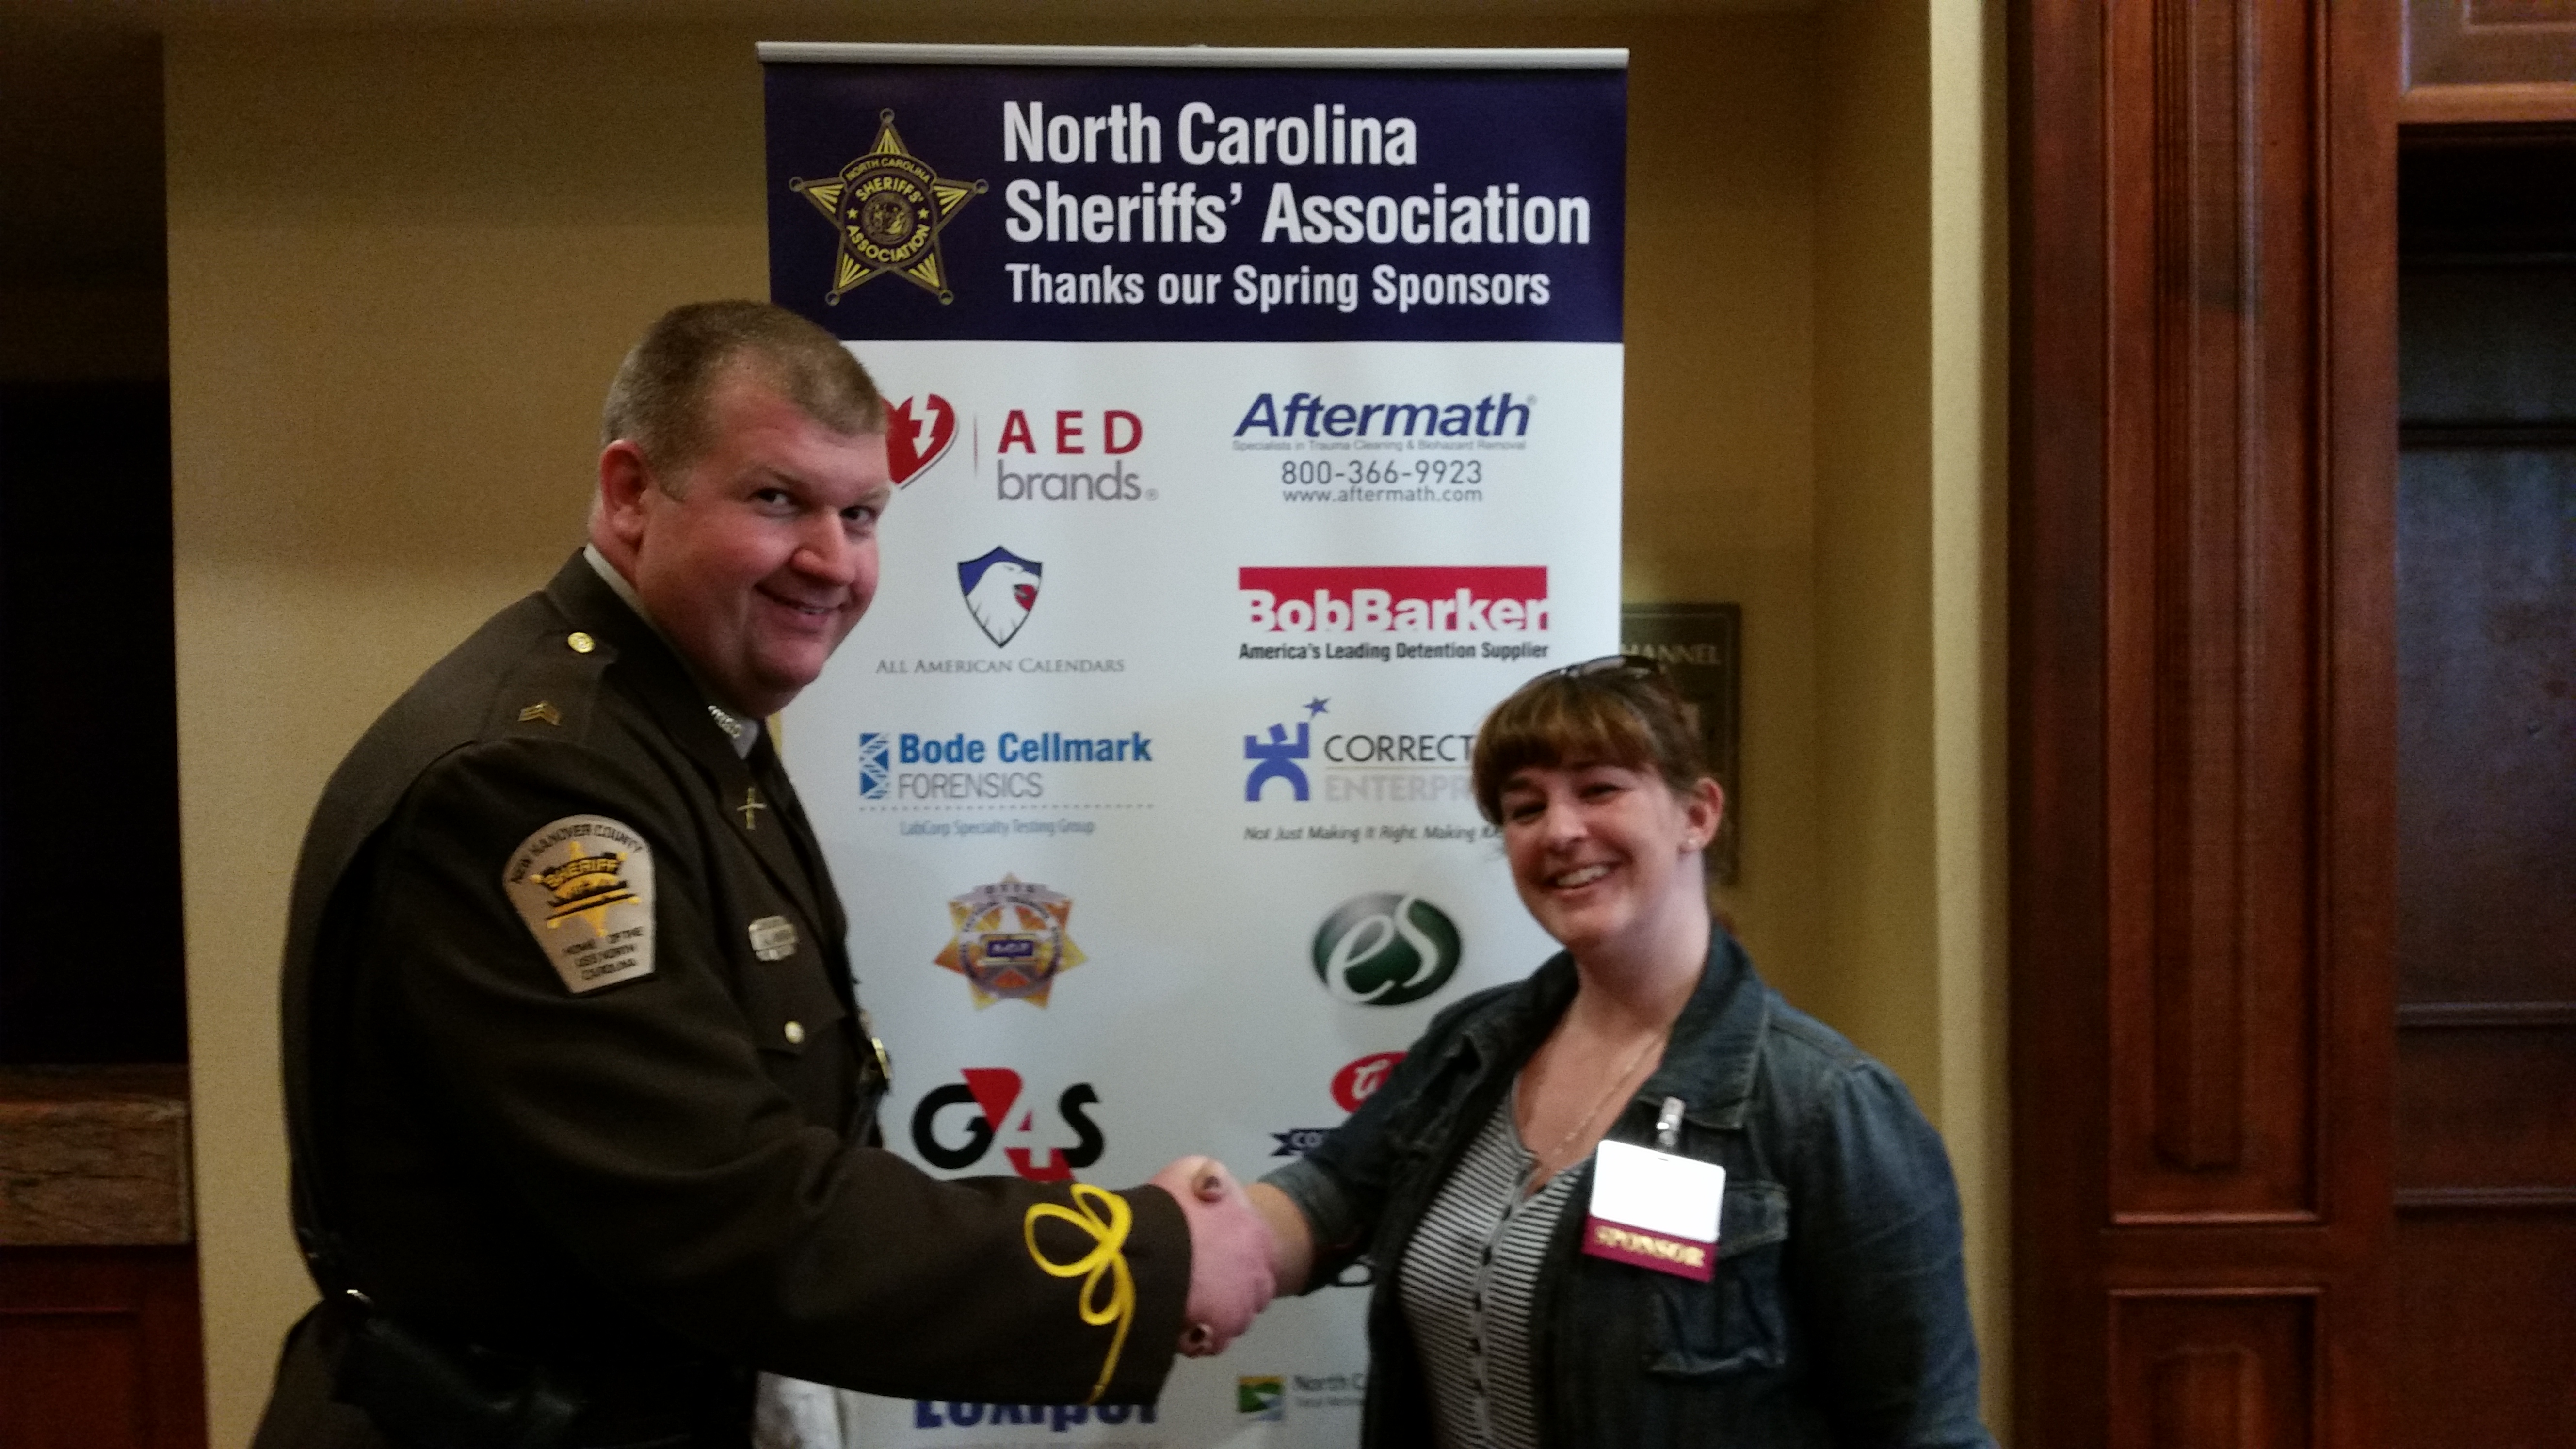 Aftermath Attends the 2016 NCSA Spring Meeting